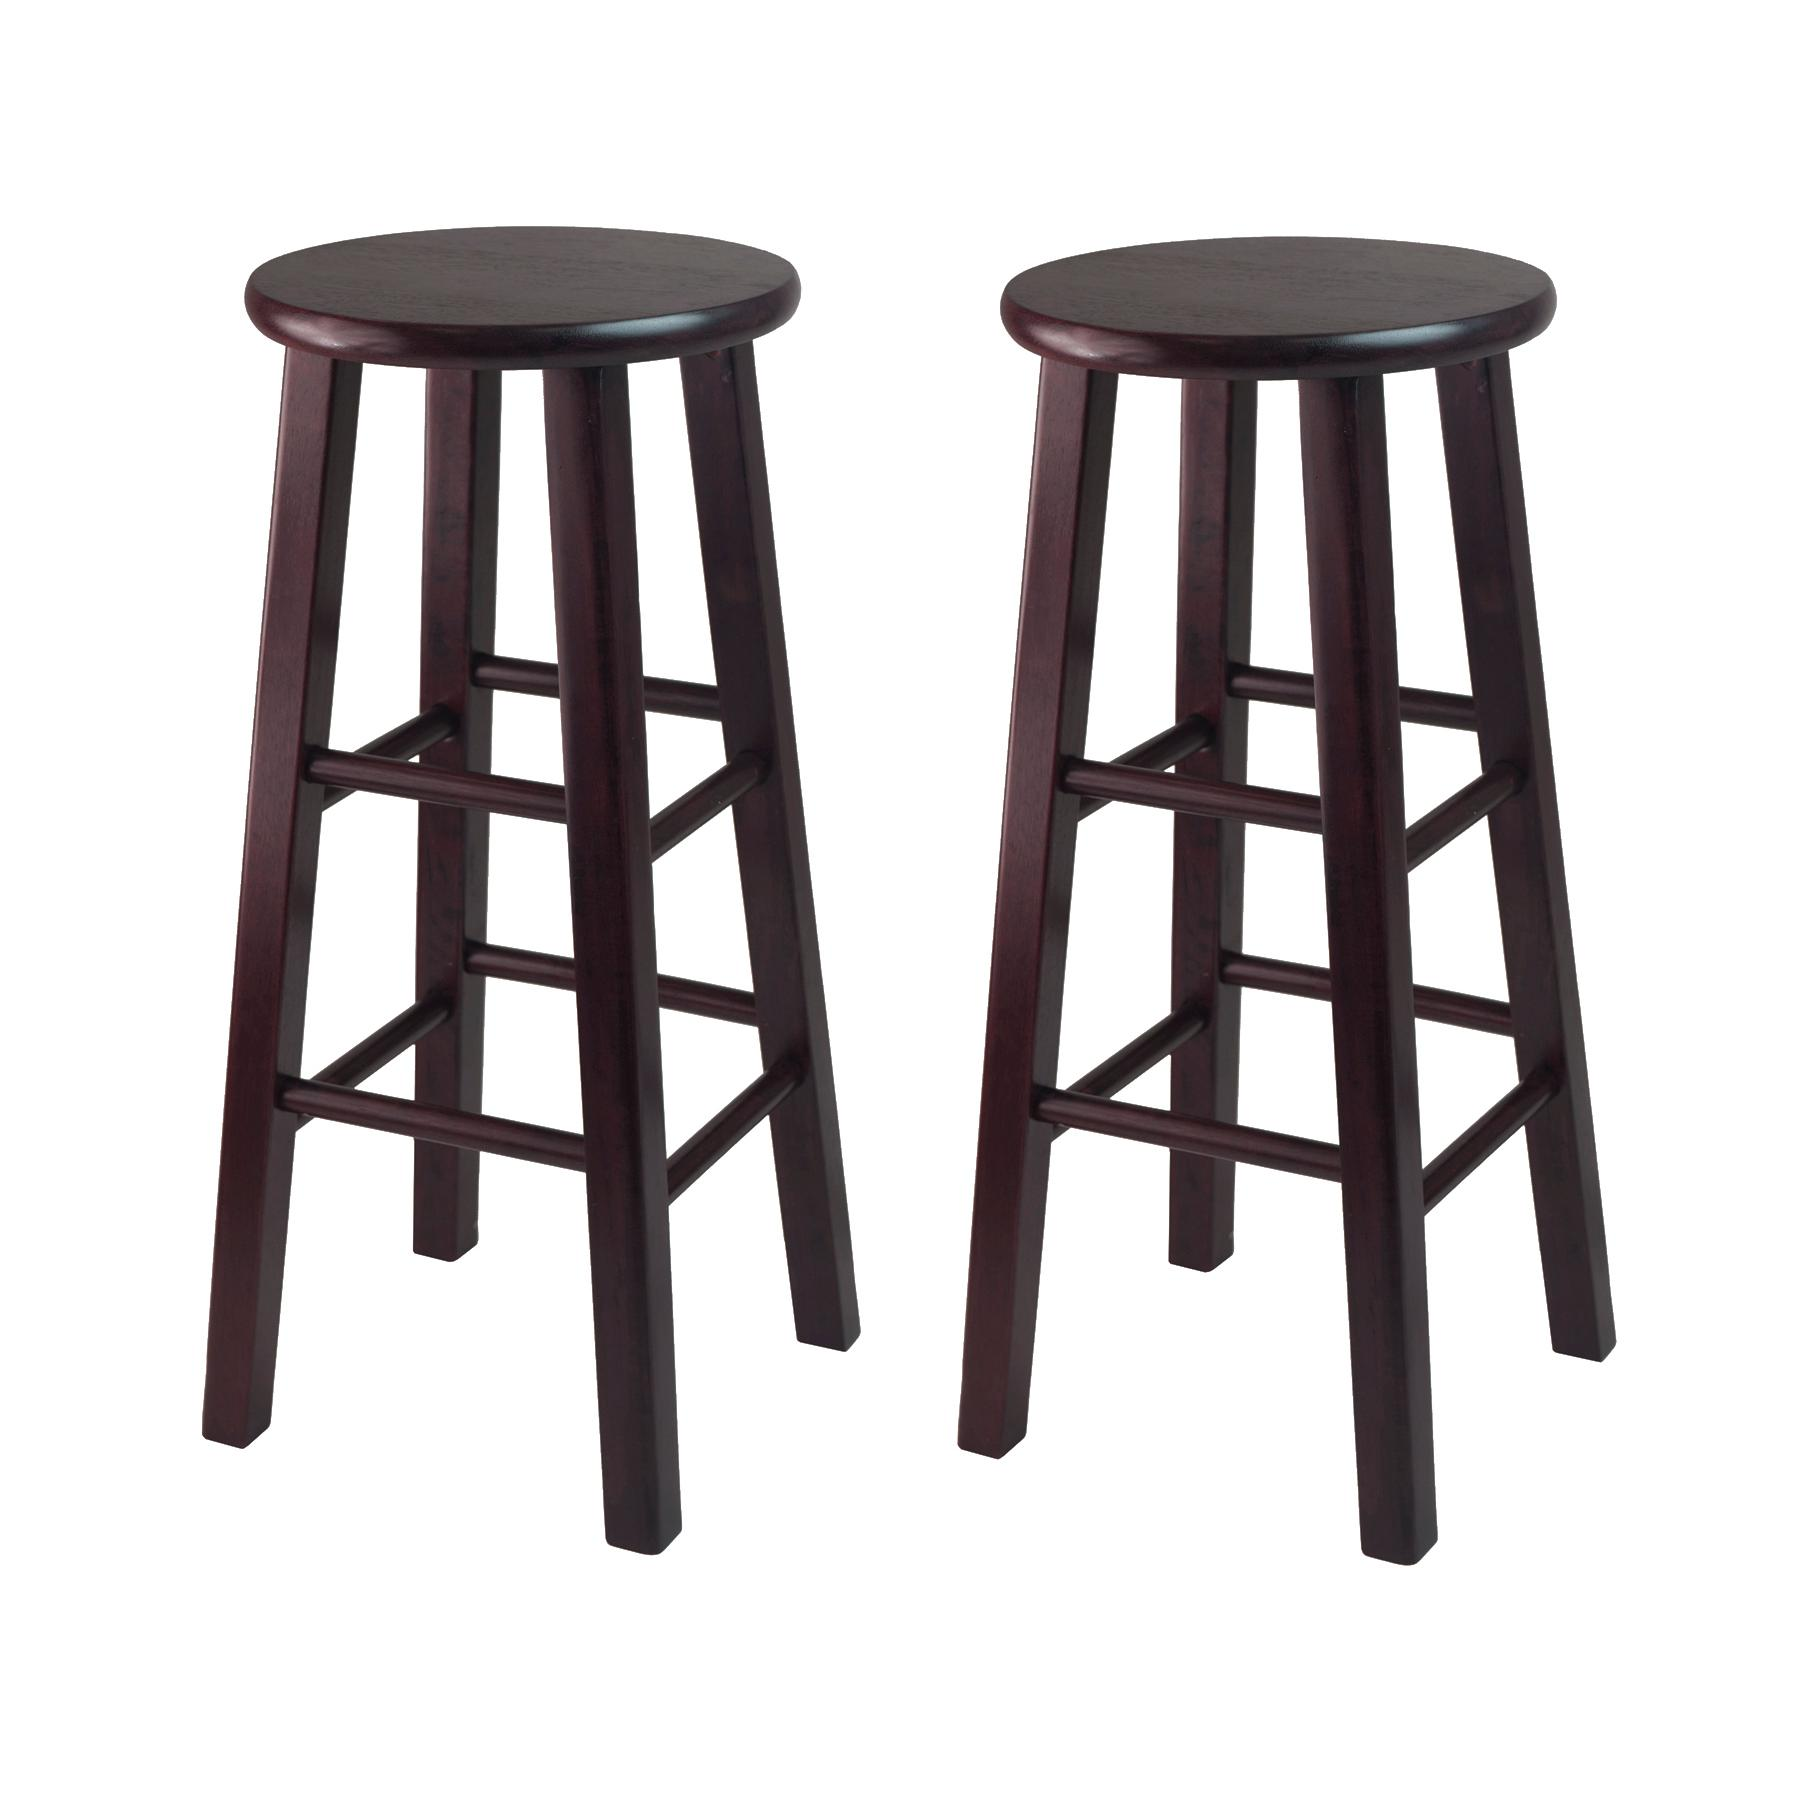 Amazon Winsome Bar Stool with Square Legs 29 Inch Espresso